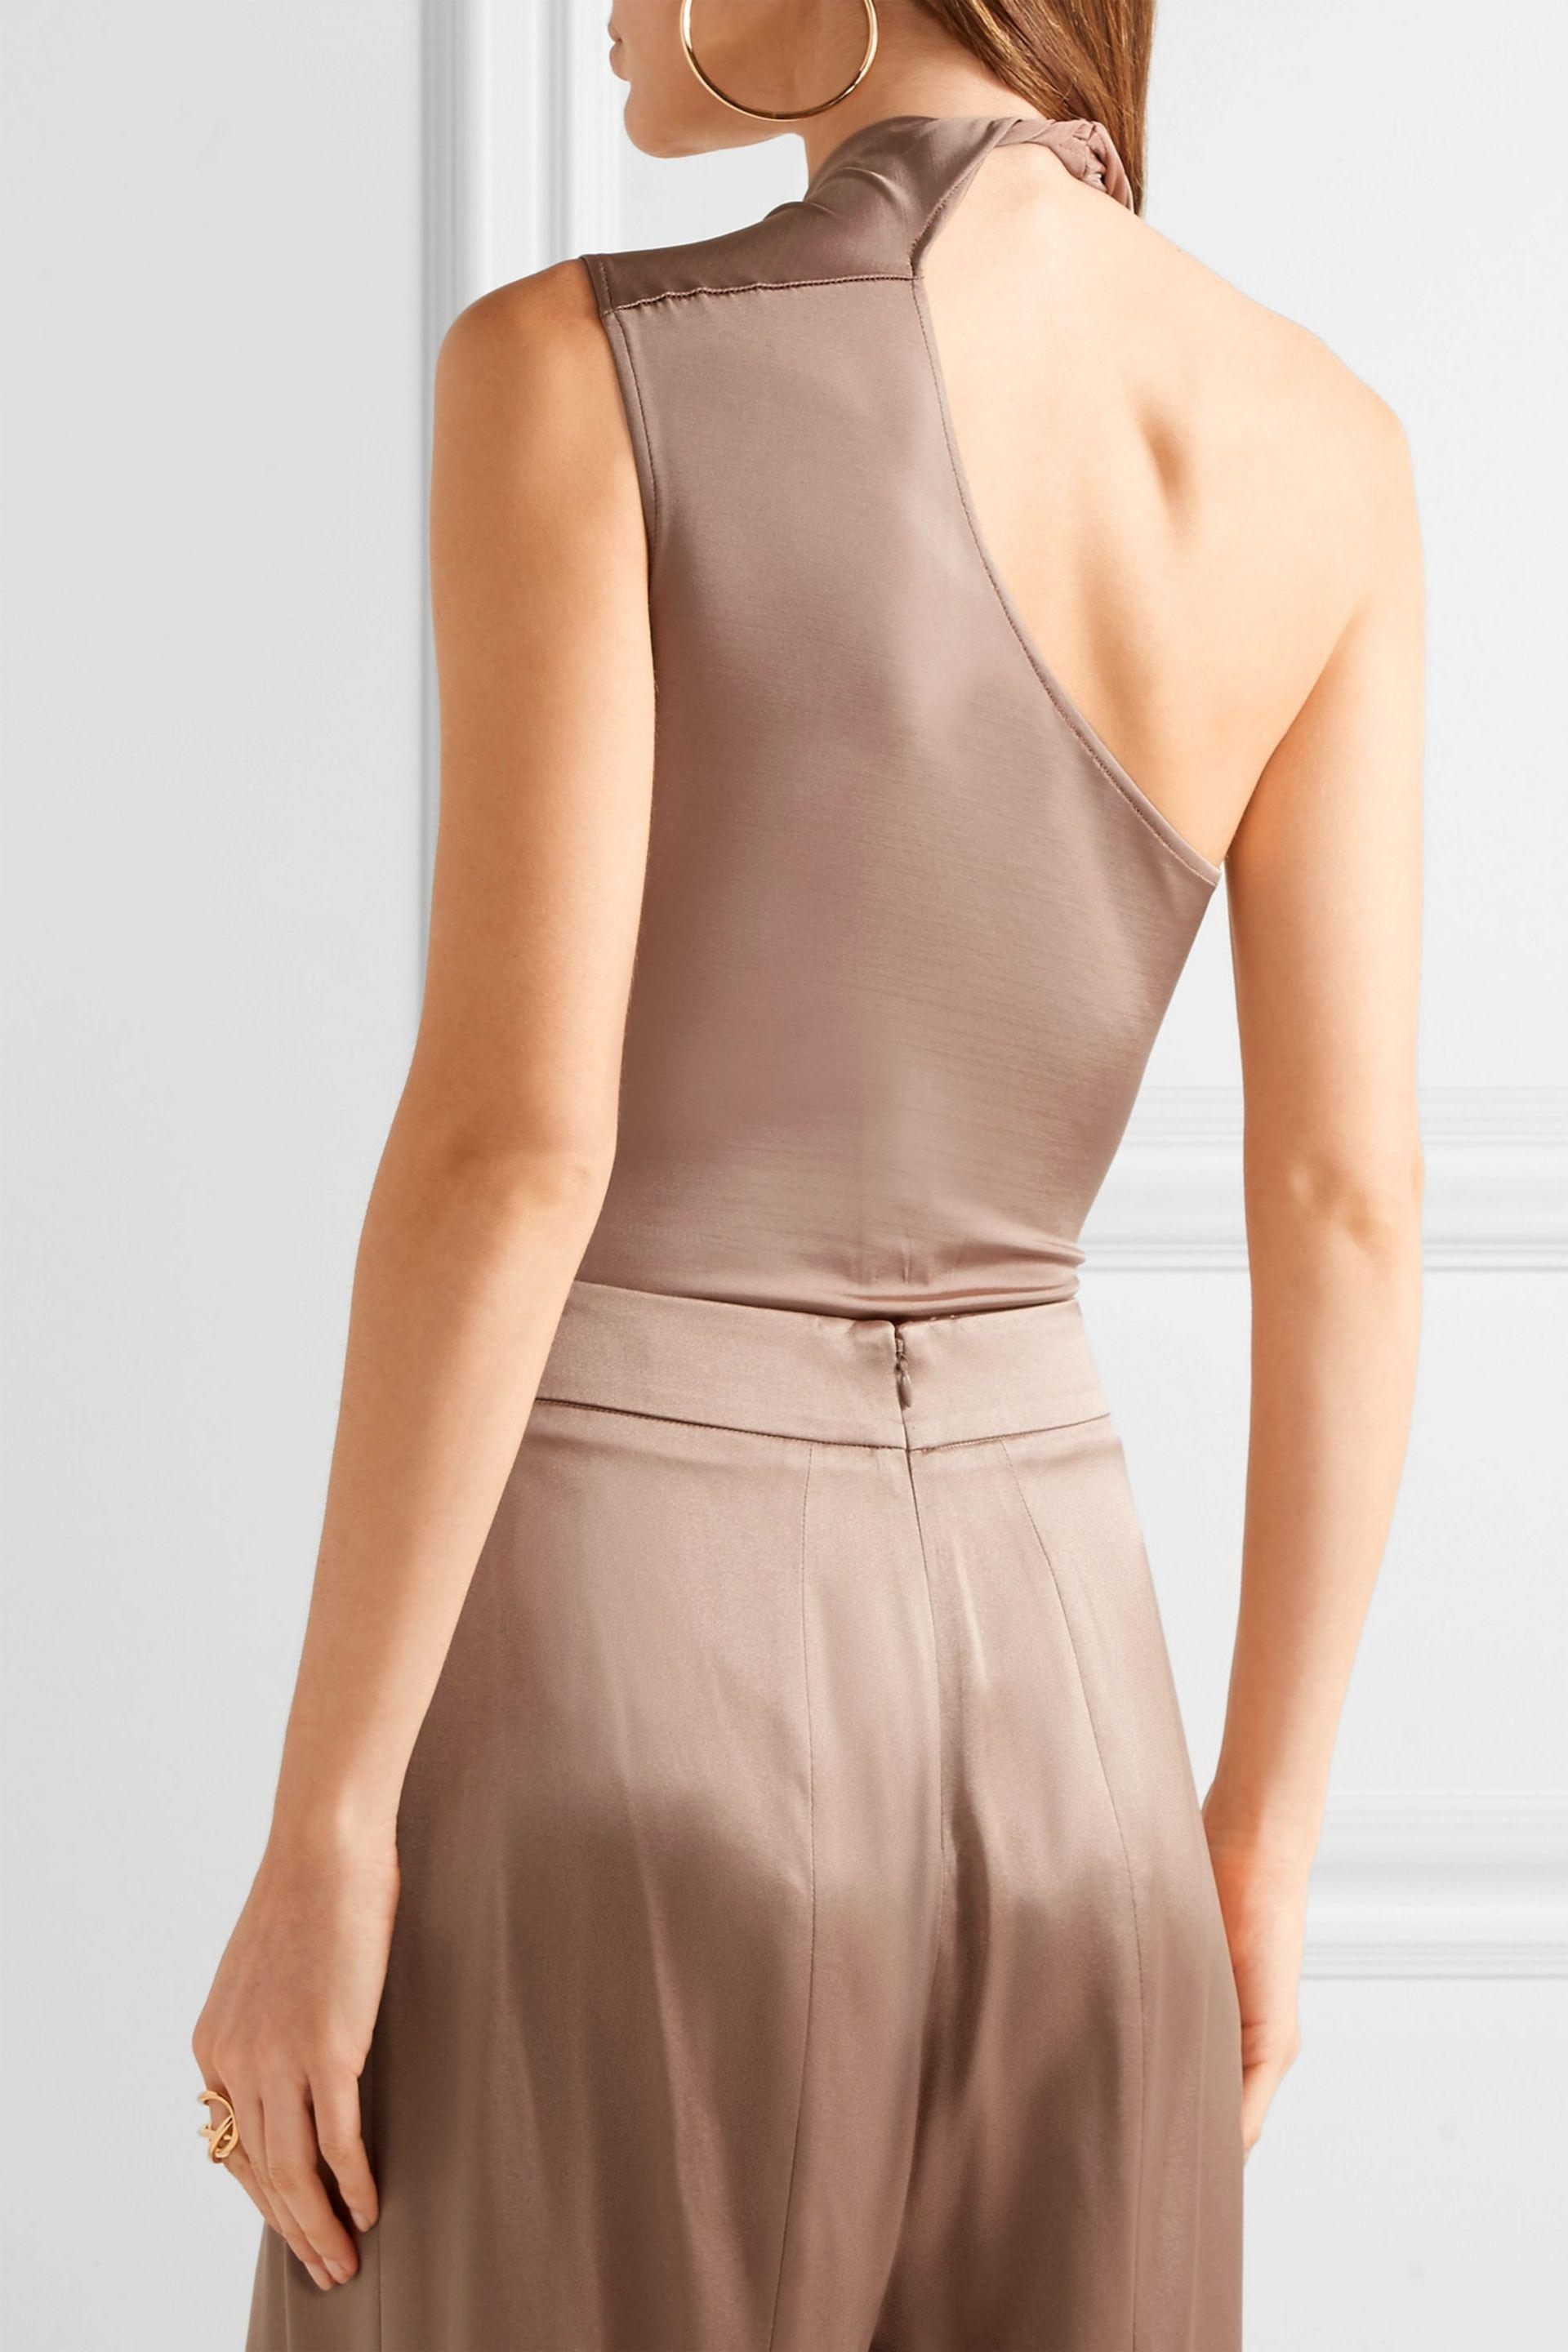 Cushnie Et Ochs Woman Twisted Wrap-effect Stretch-jersey Bodysuit Light Brown Size L Cushnie et Ochs Browse The Cheapest Sale Online With Mastercard Cheap Price Fashionable Cheap Price uvEyxM